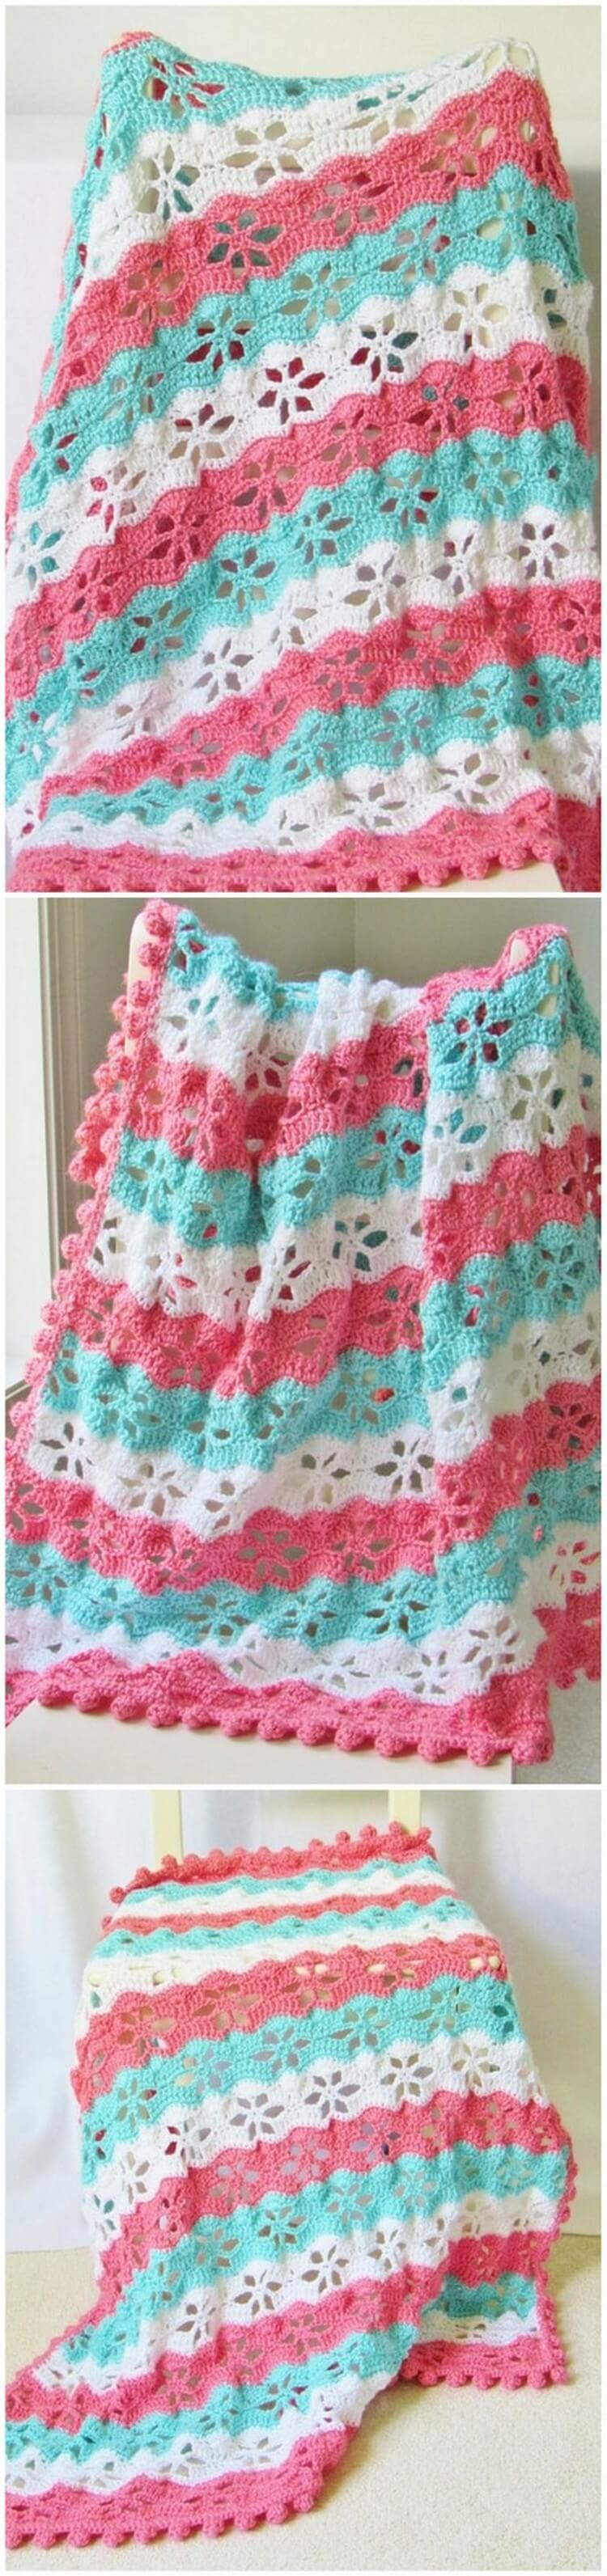 Crochet Blanket Pattern (40)